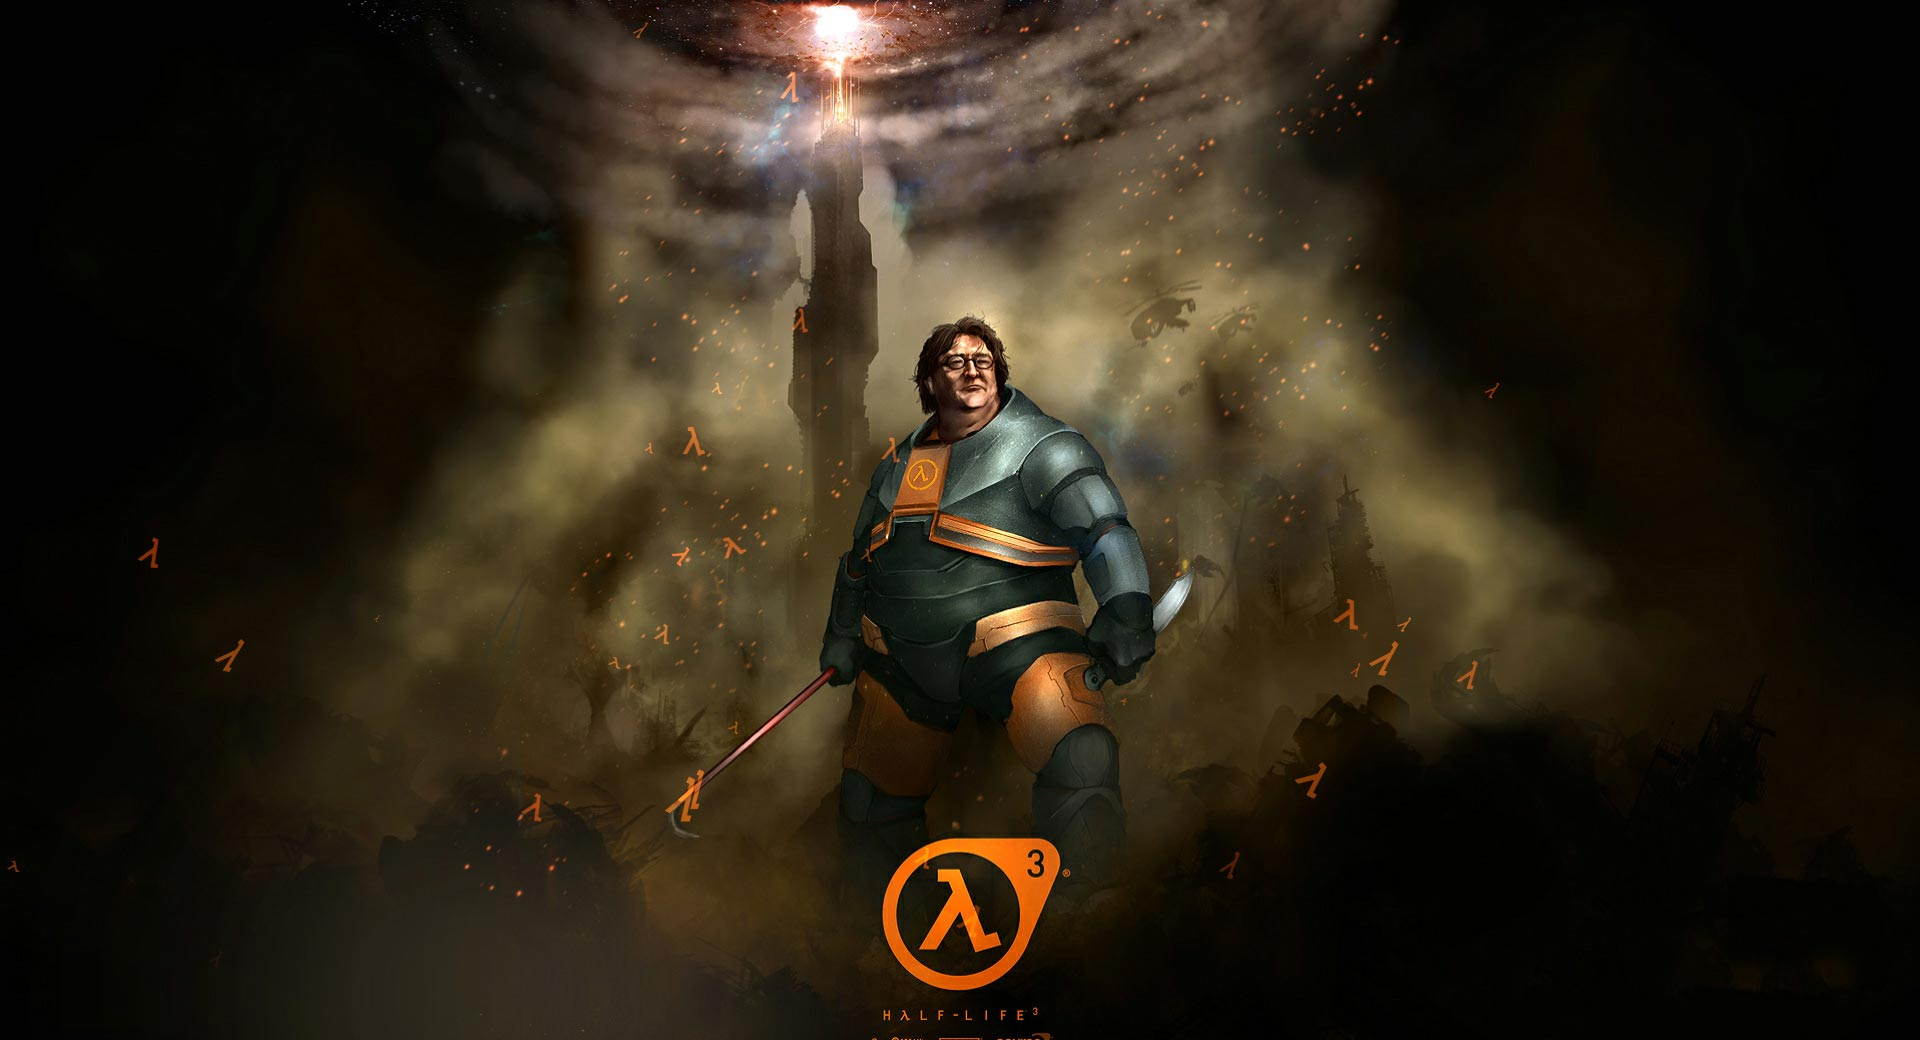 Half Life Wallpapers Top Free Half Life Backgrounds